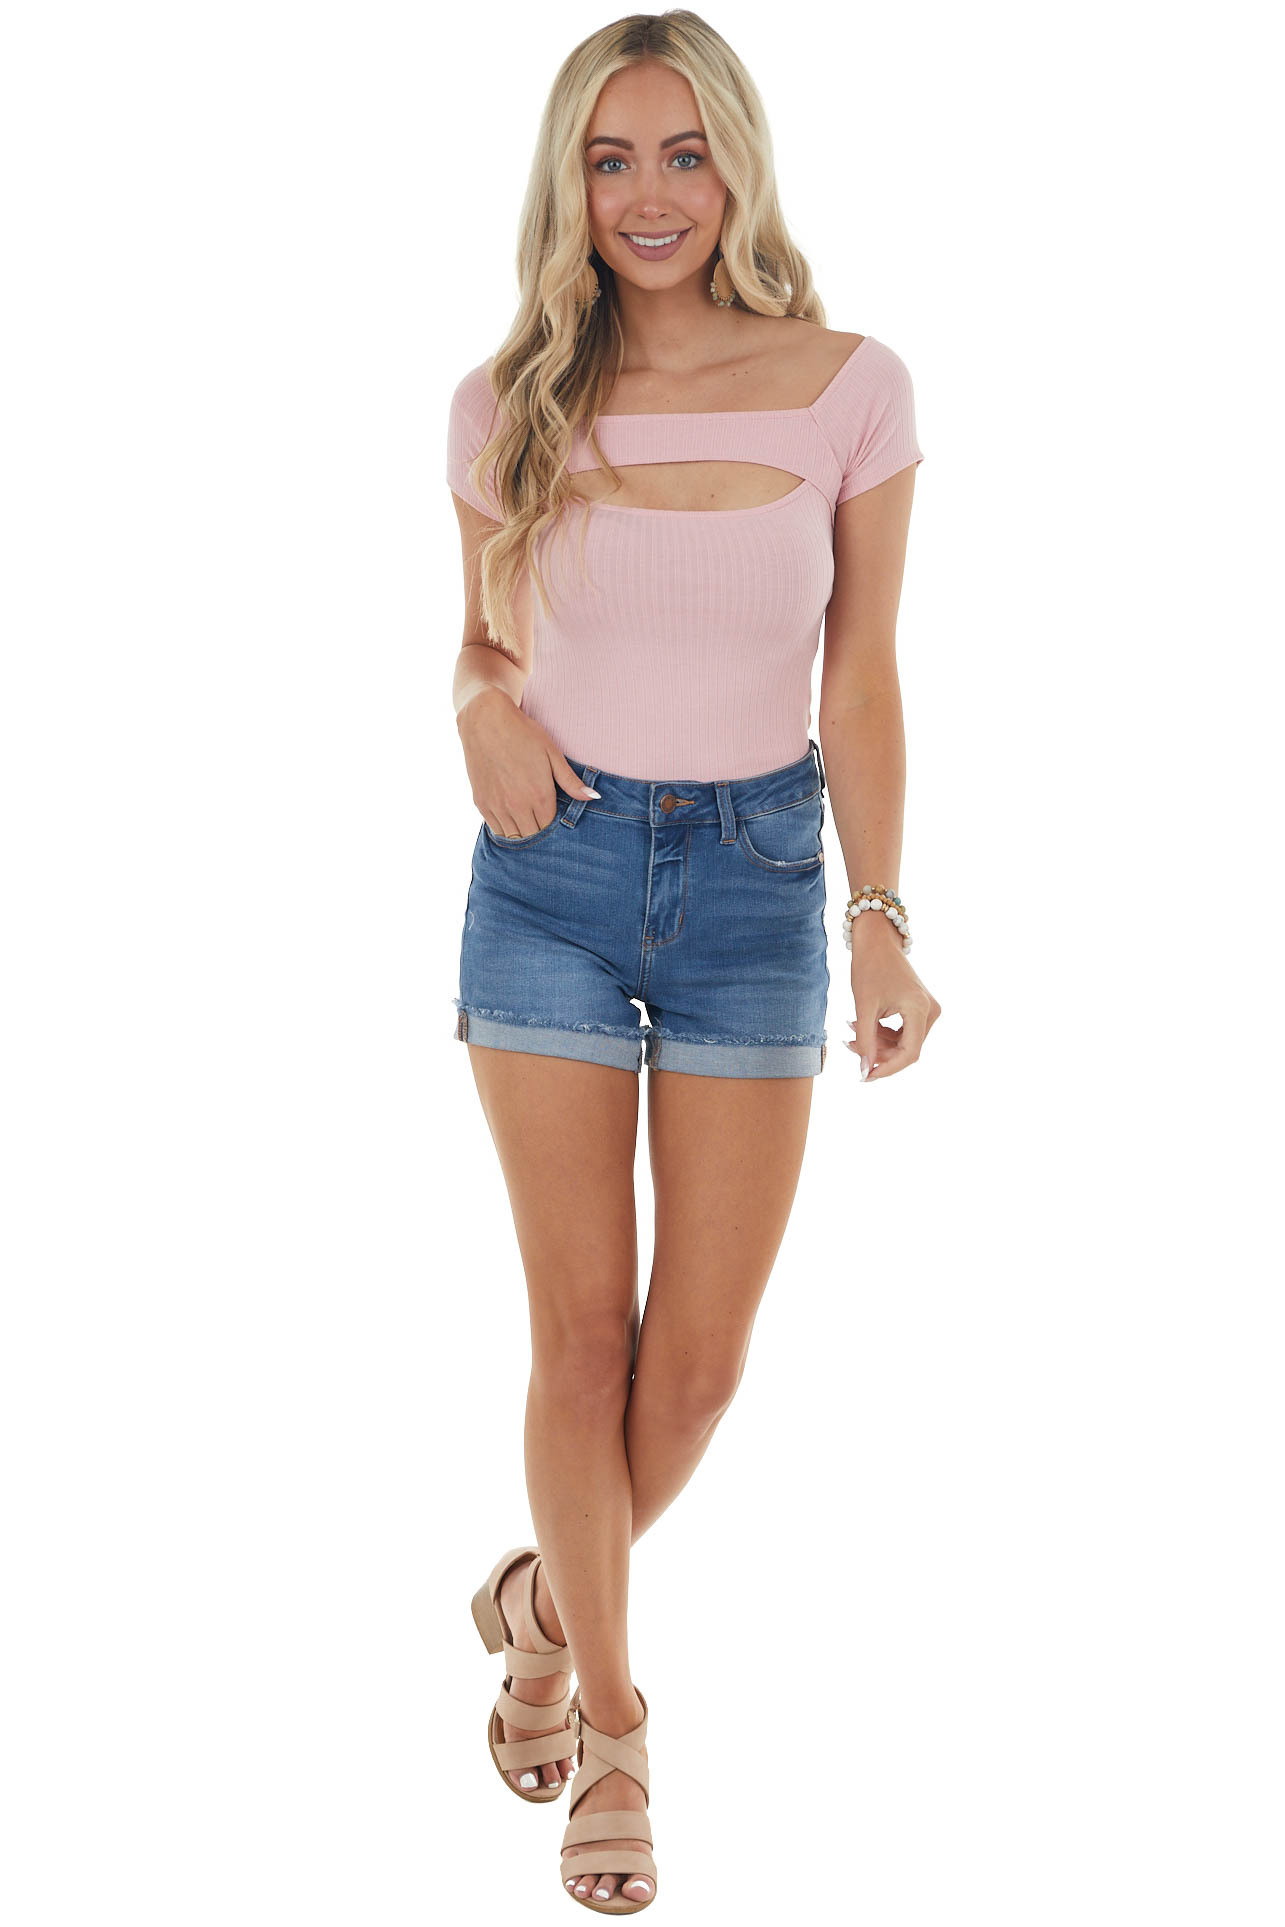 Blush Square Neck Bodysuit with Cut Out Front